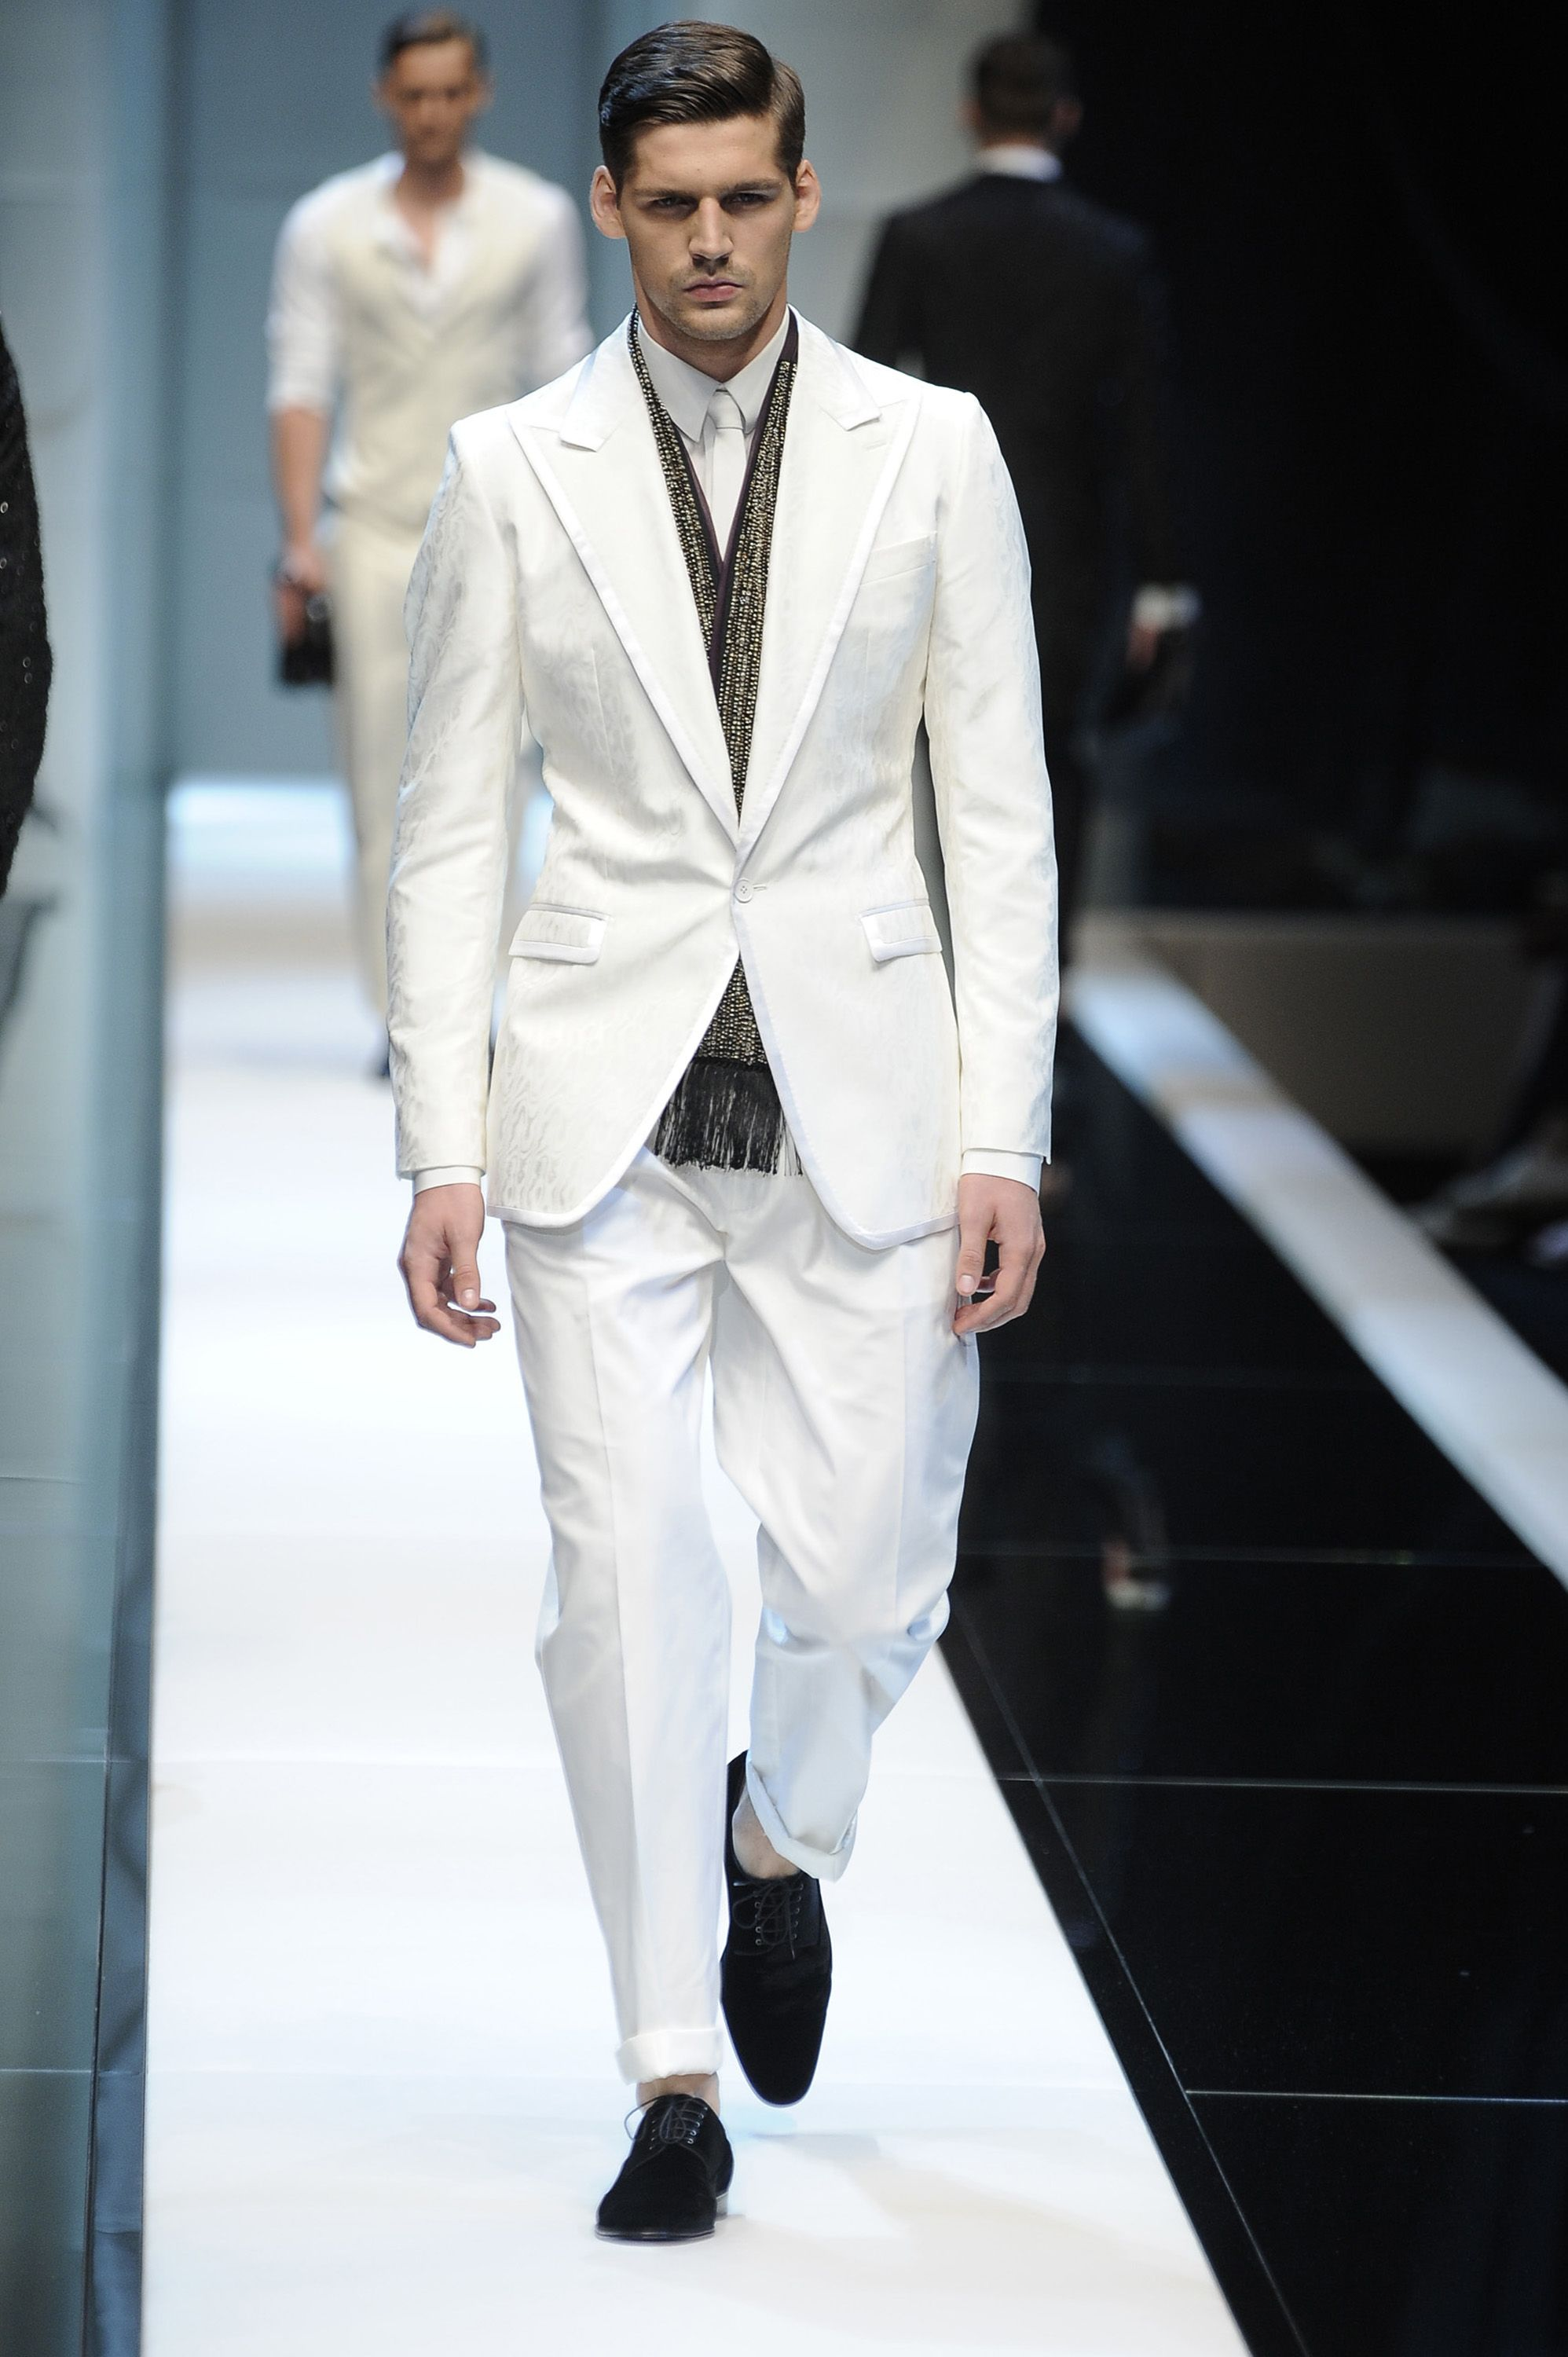 Wedding Suits For Men Inspiration For Male | Mens fashion week ...